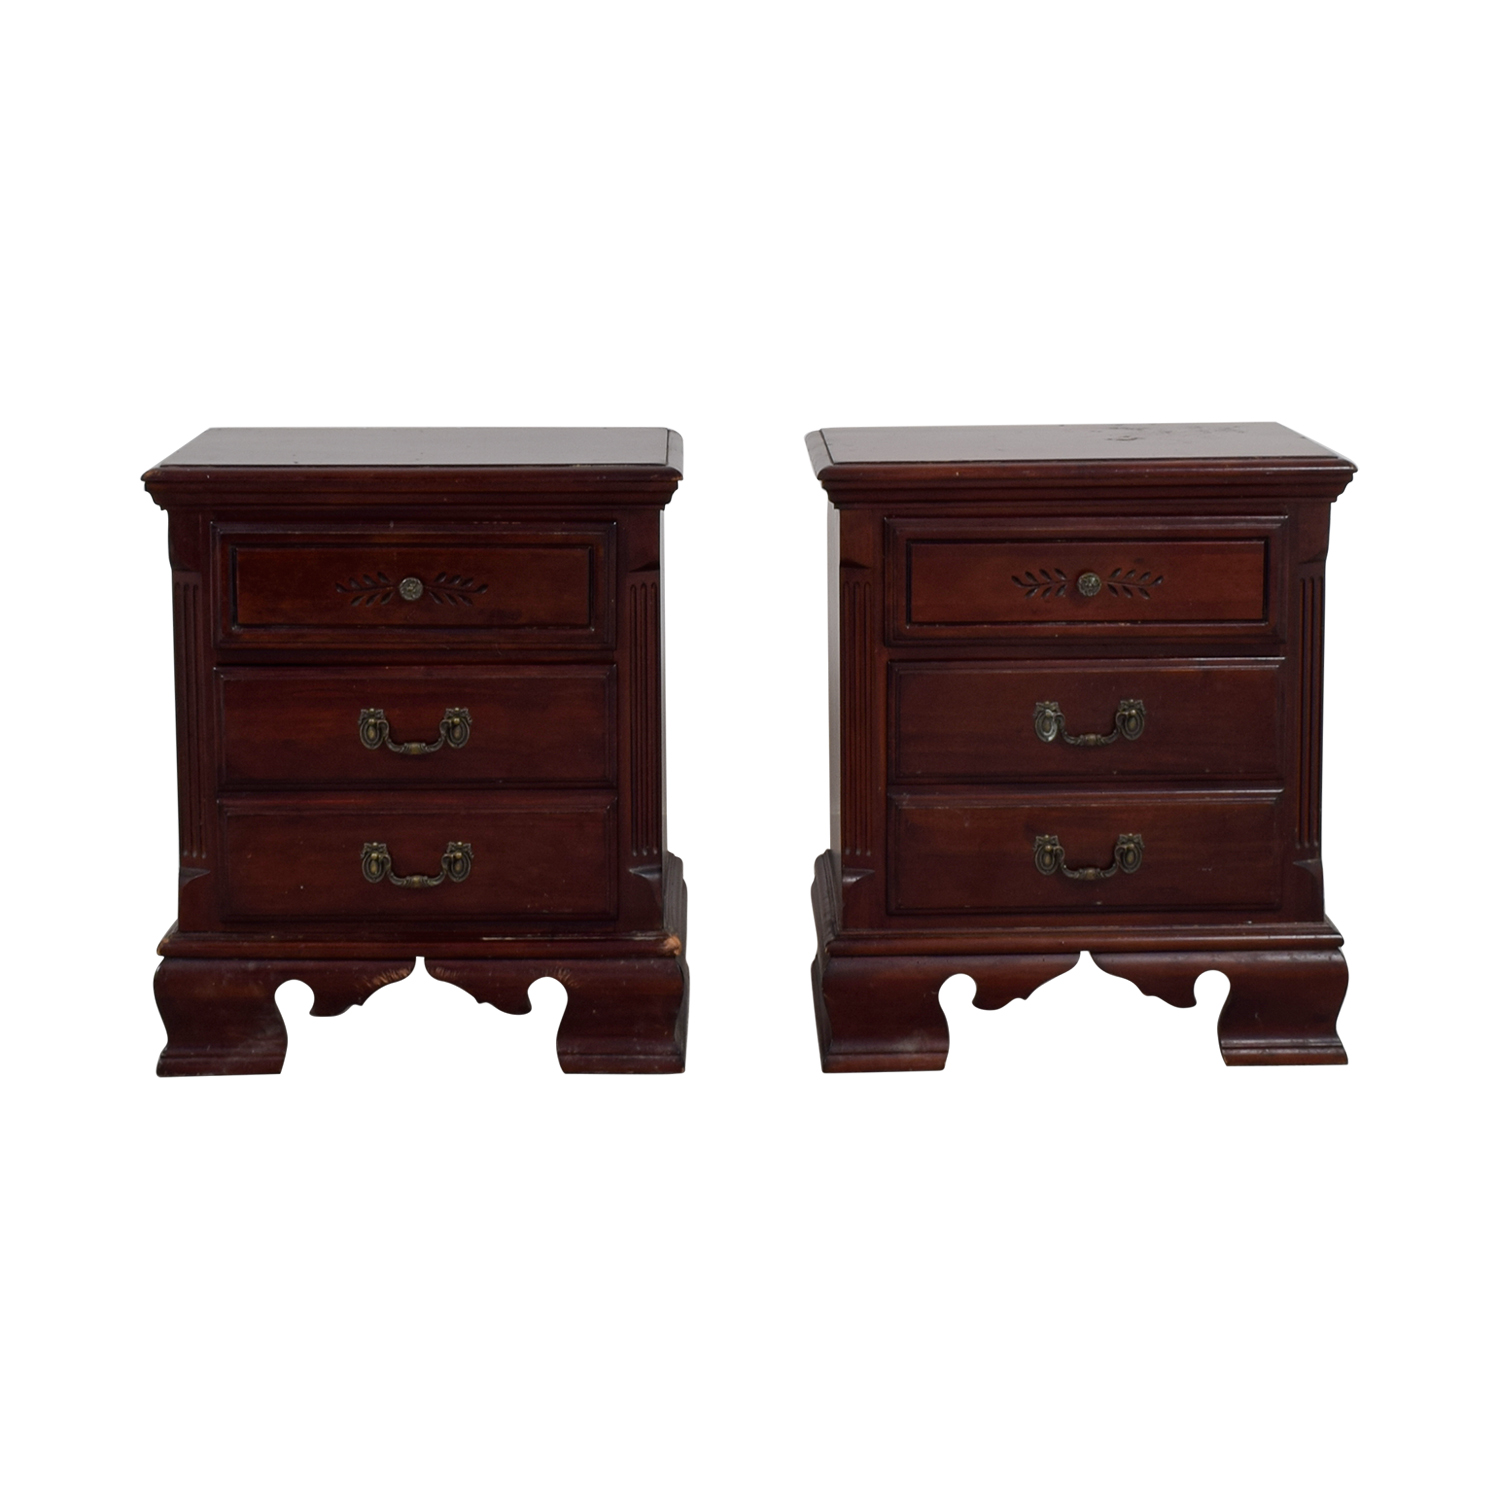 Hekman Furniture Company Hekman Furniture Company Two-Drawer End Tables Tables